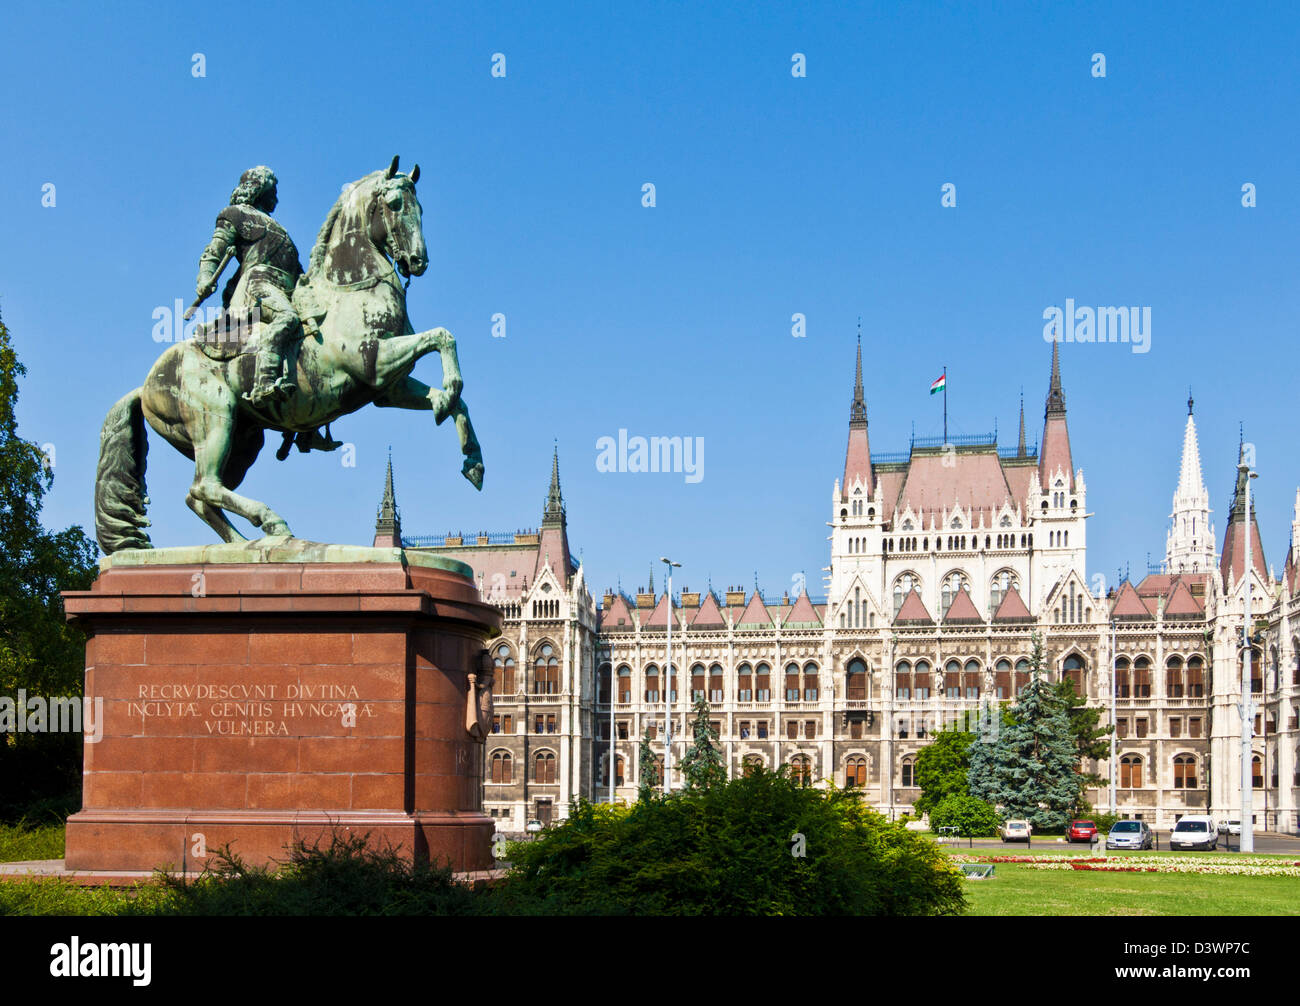 The neo-gothic Hungarian Parliament building, designed by Imre Steindl, statue of ferenc Rakoczi II Budapest Hungary - Stock Image